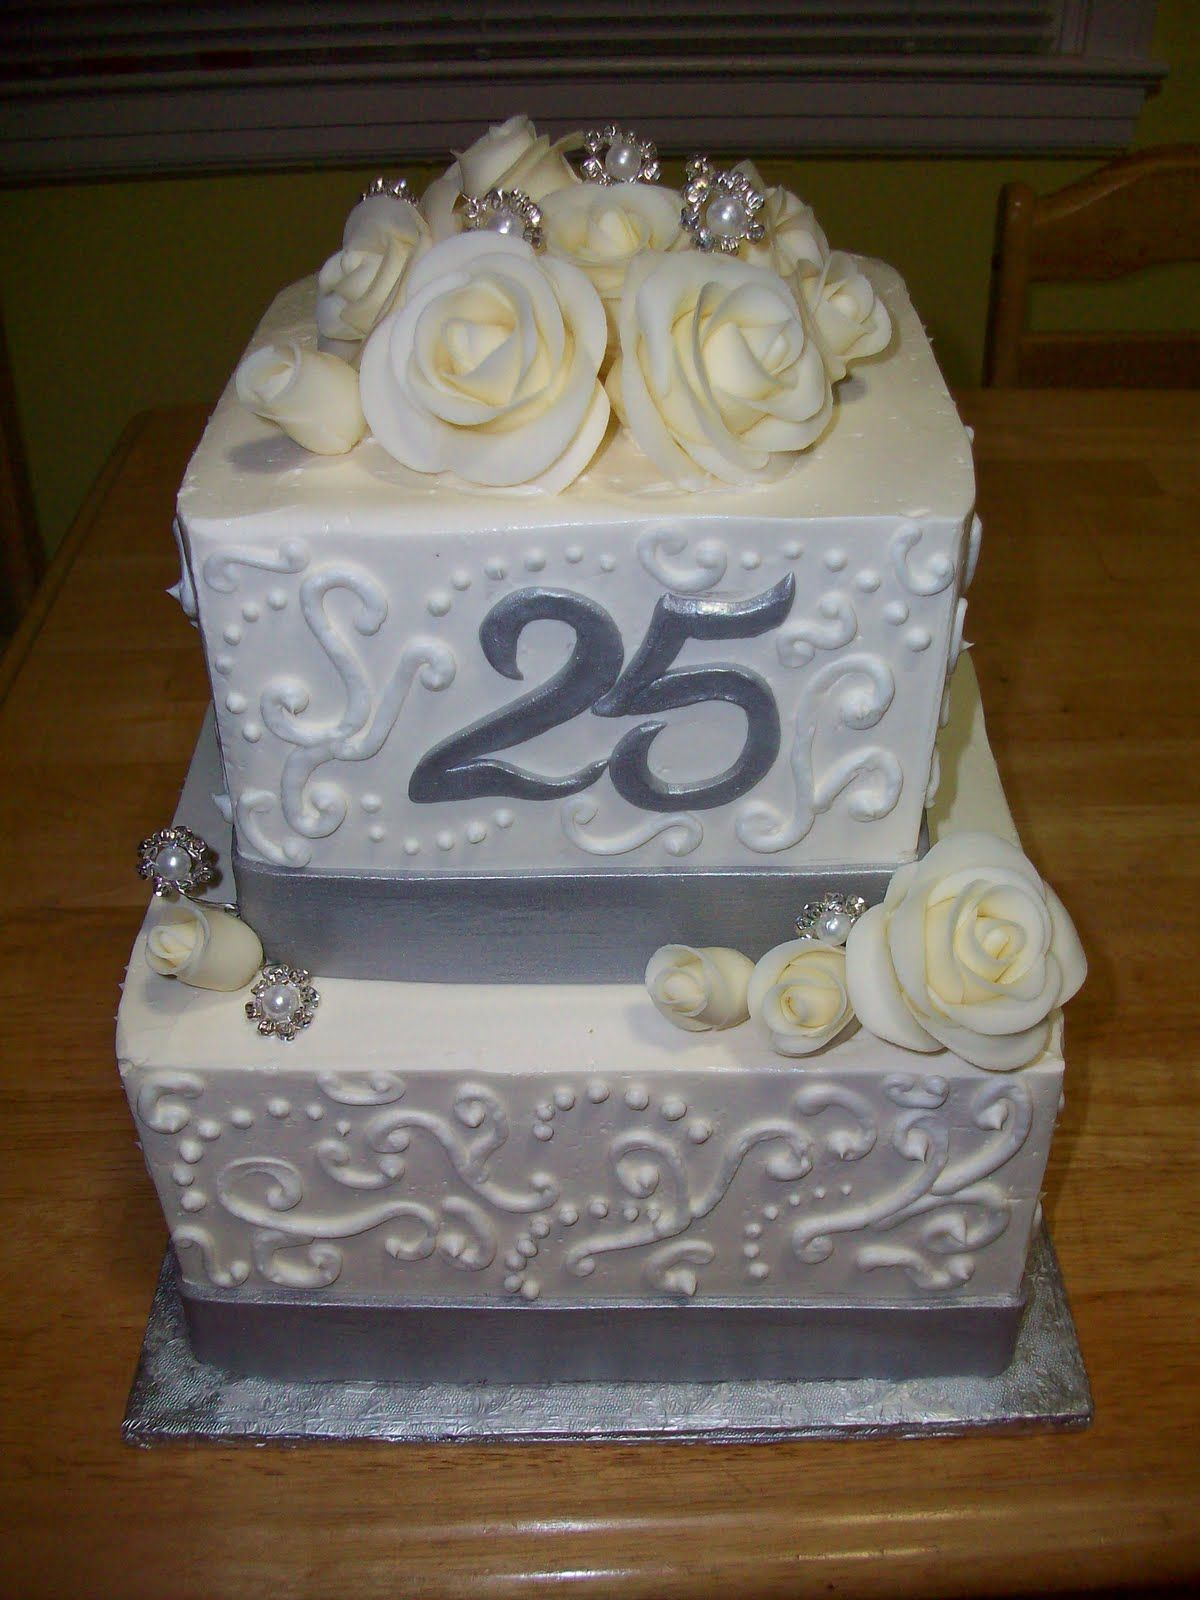 Cake Ideas For Parents Anniversary : Pictures of Happy Anniversary Cakes My parents 25th ...